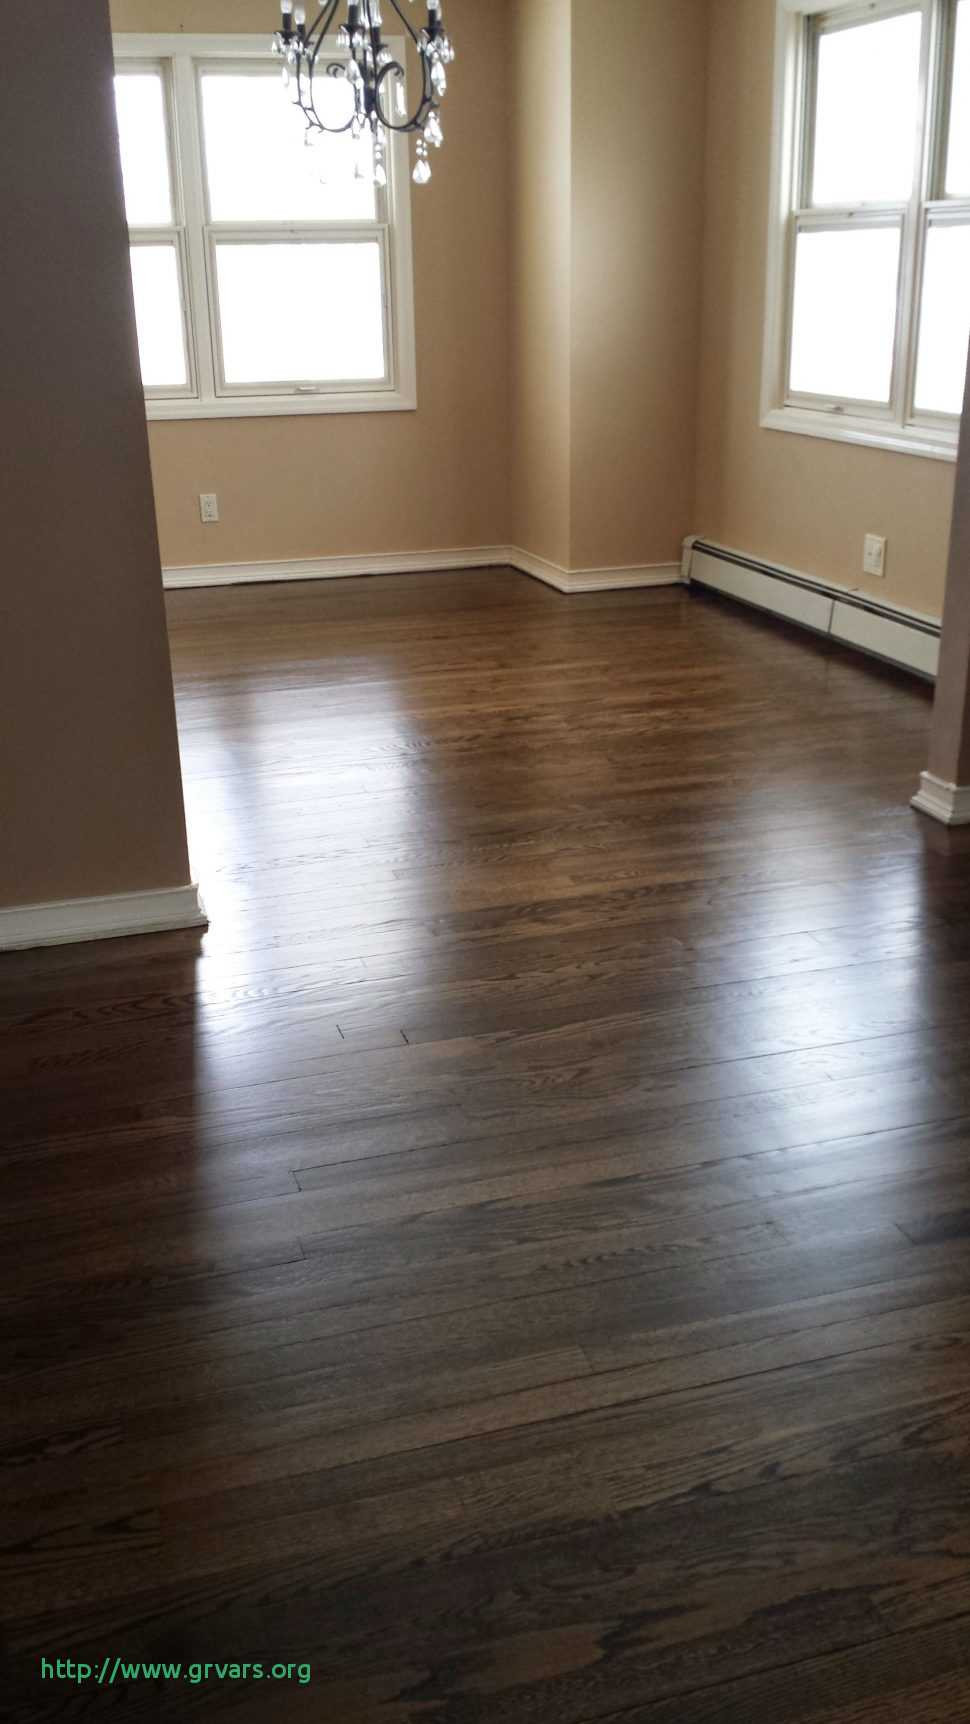 approximate cost to refinish hardwood floors of how much does it cost to have hardwood floors refinished frais inside how much does it cost to have hardwood floors refinished frais amusing refinishingod floors diy network refinish parquet without